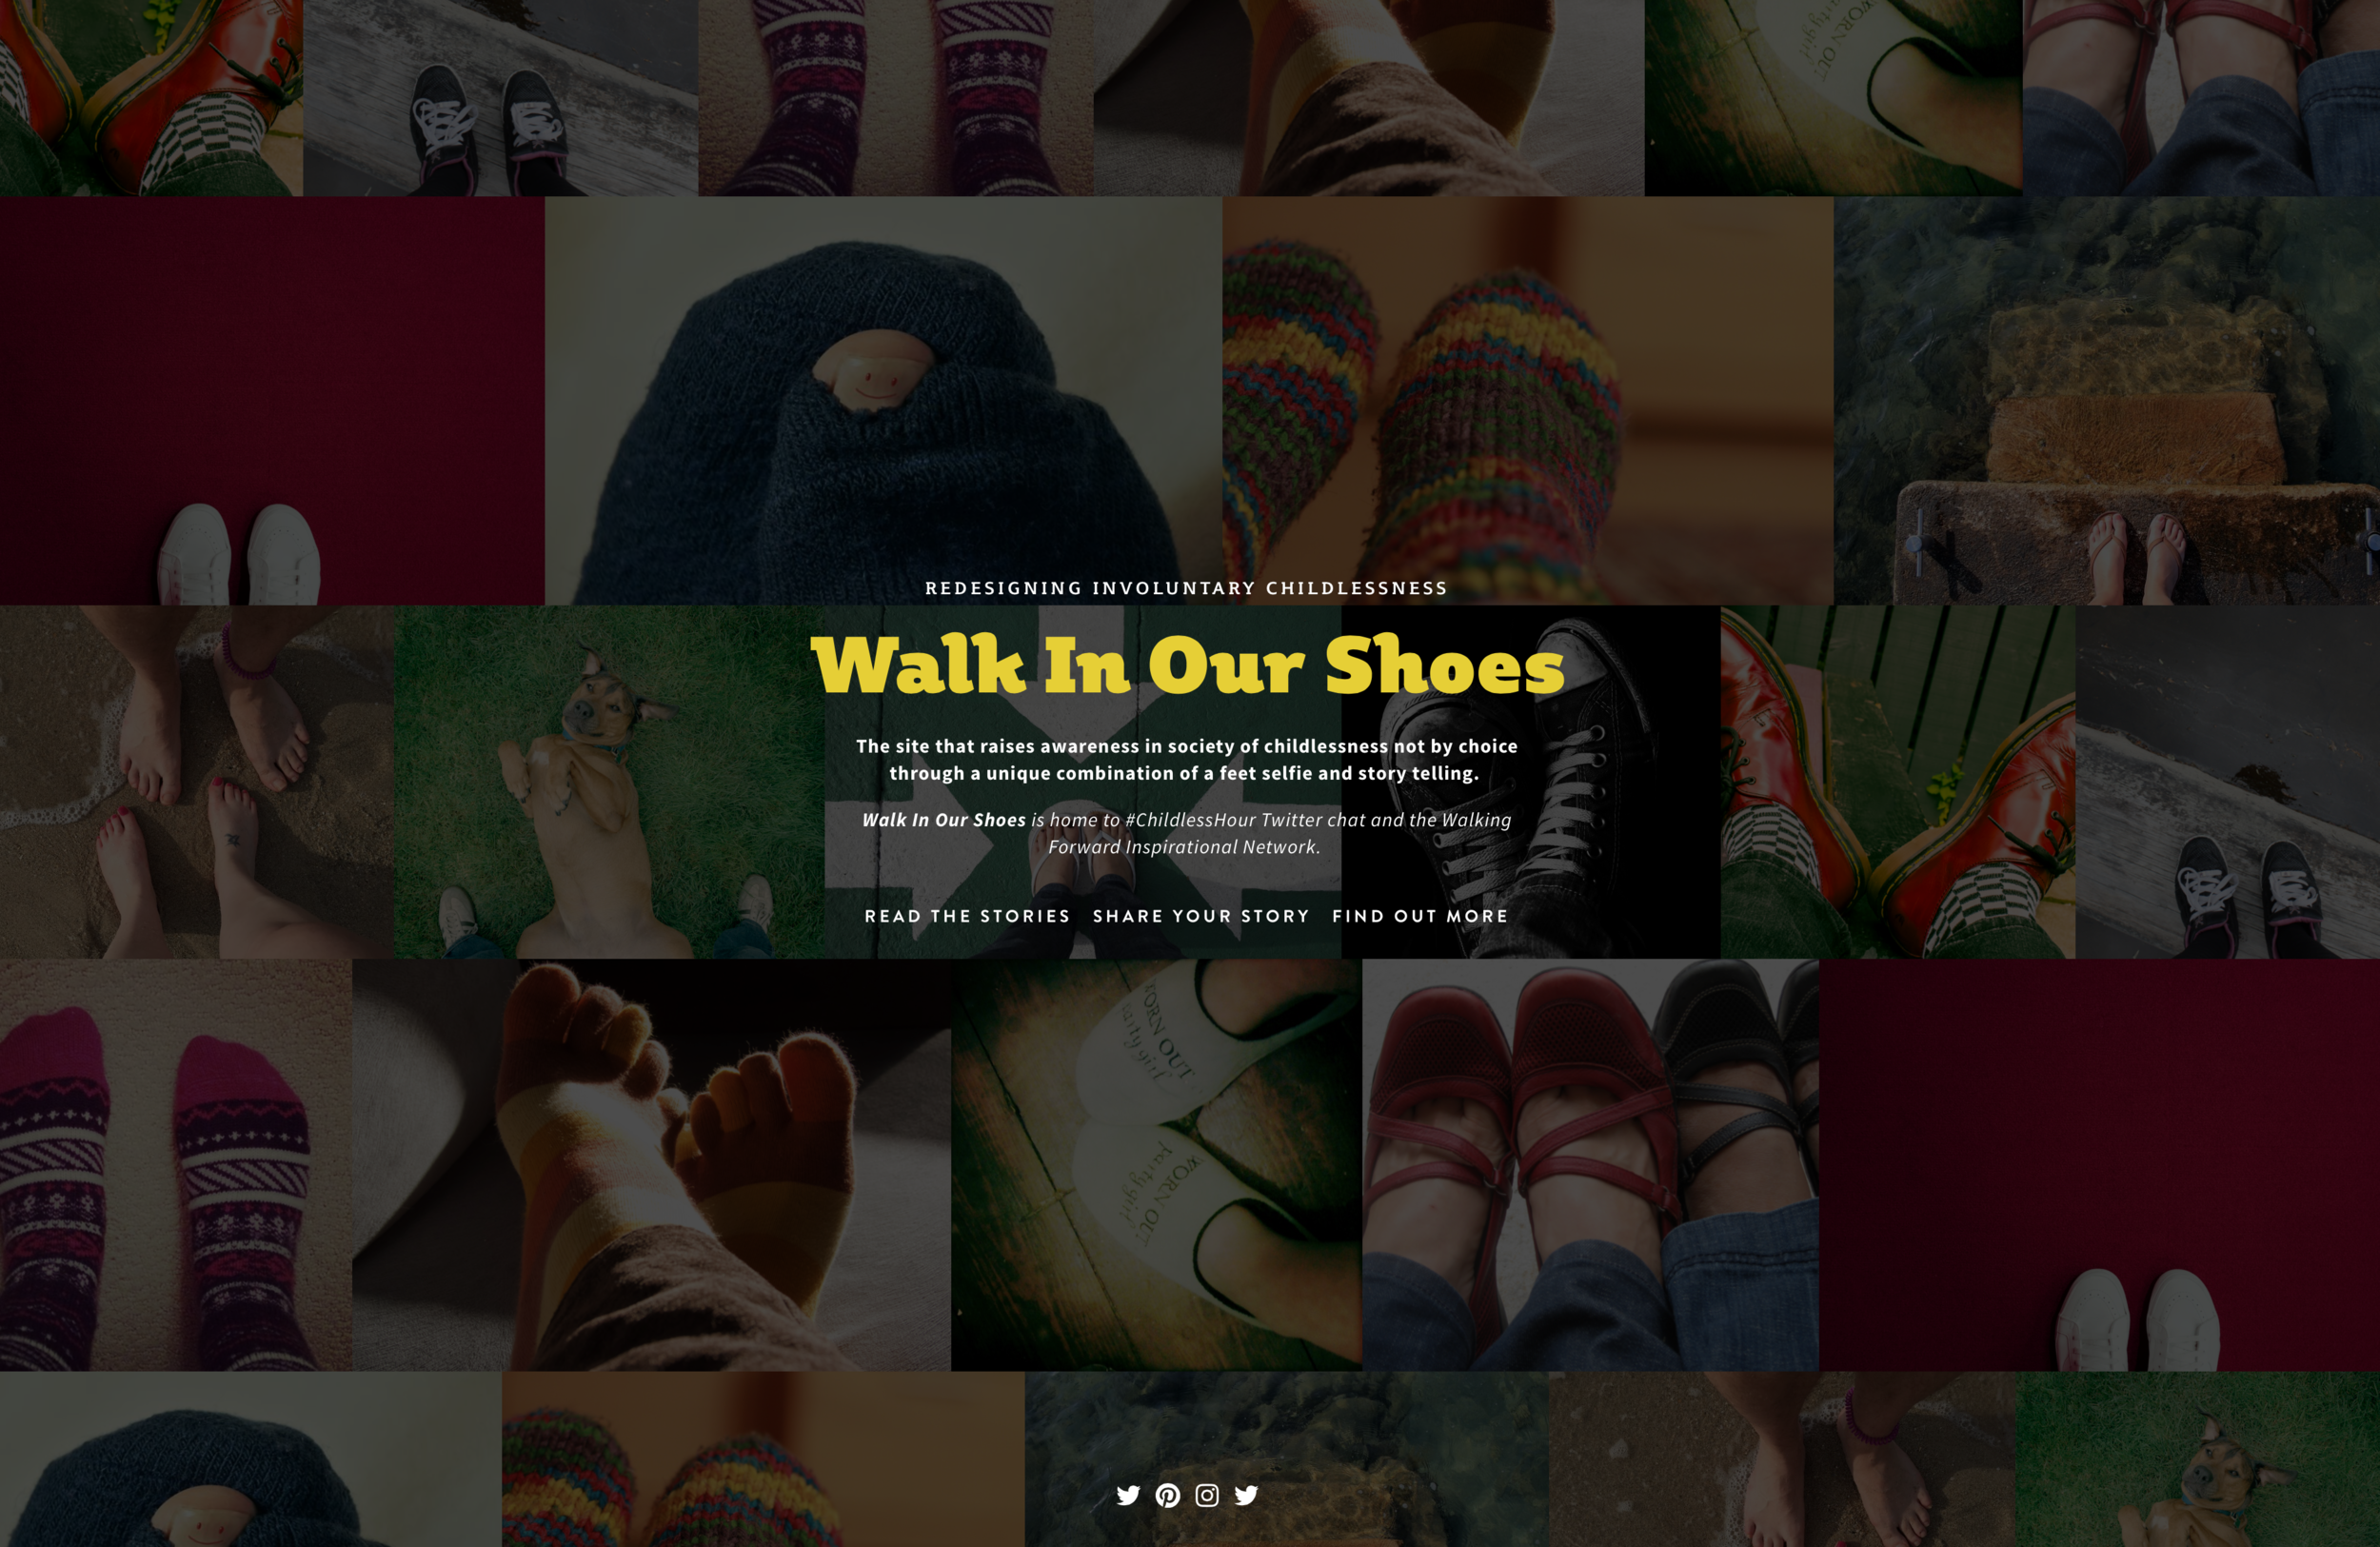 The landing page for Walk In Our Shoes, introduced during a design thinking review